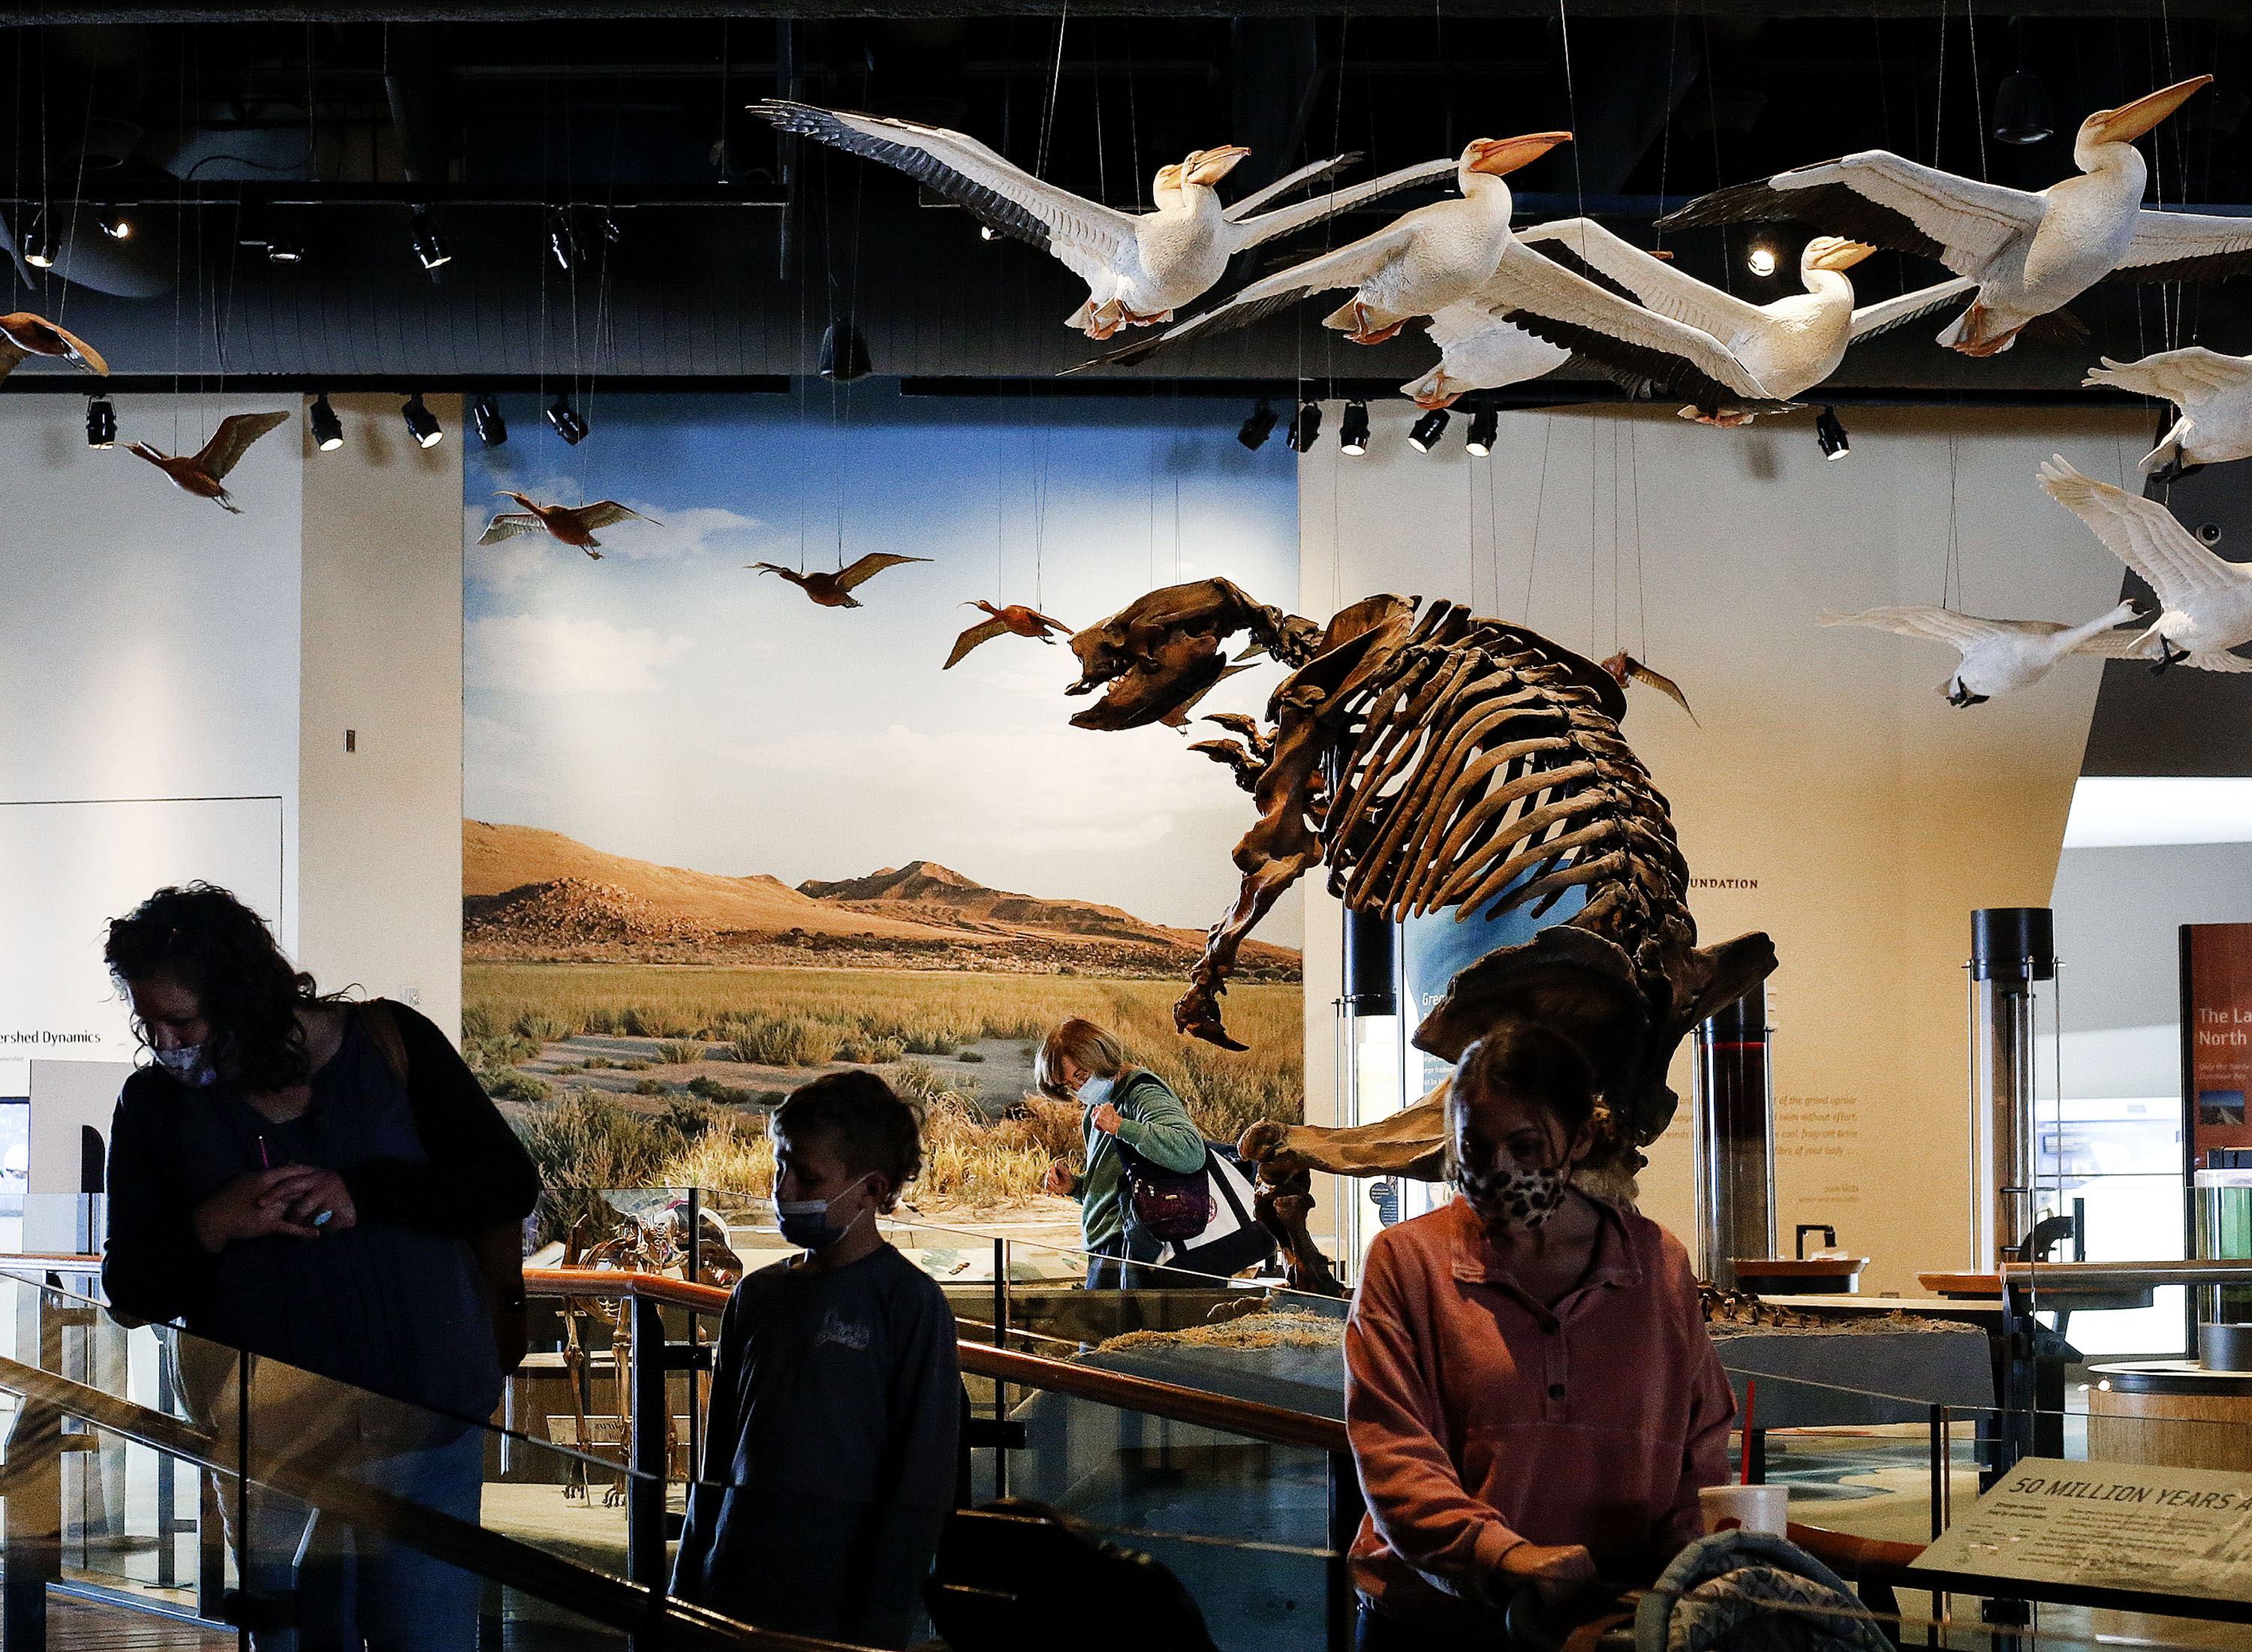 People tour the Natural History Museum of Utah in Salt Lake City on Friday, Feb. 19, 2021.